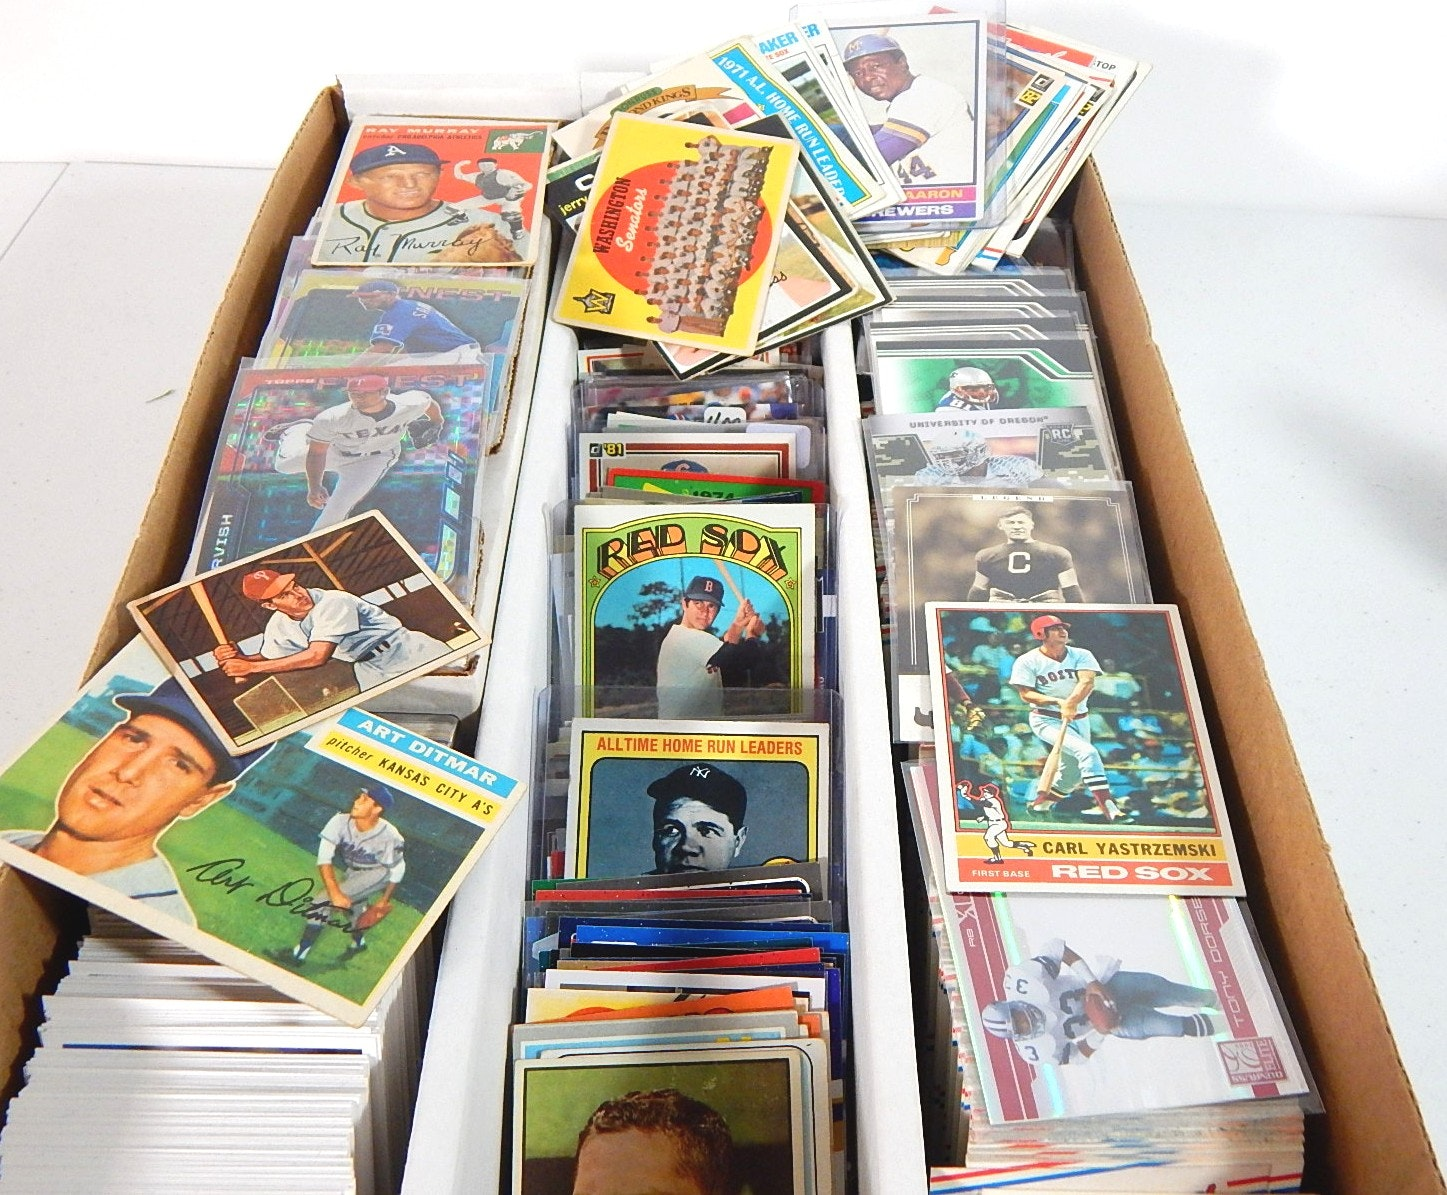 Large 3200 Count Box of Mostly Vintage Baseball Cards from 1950s and 1960s